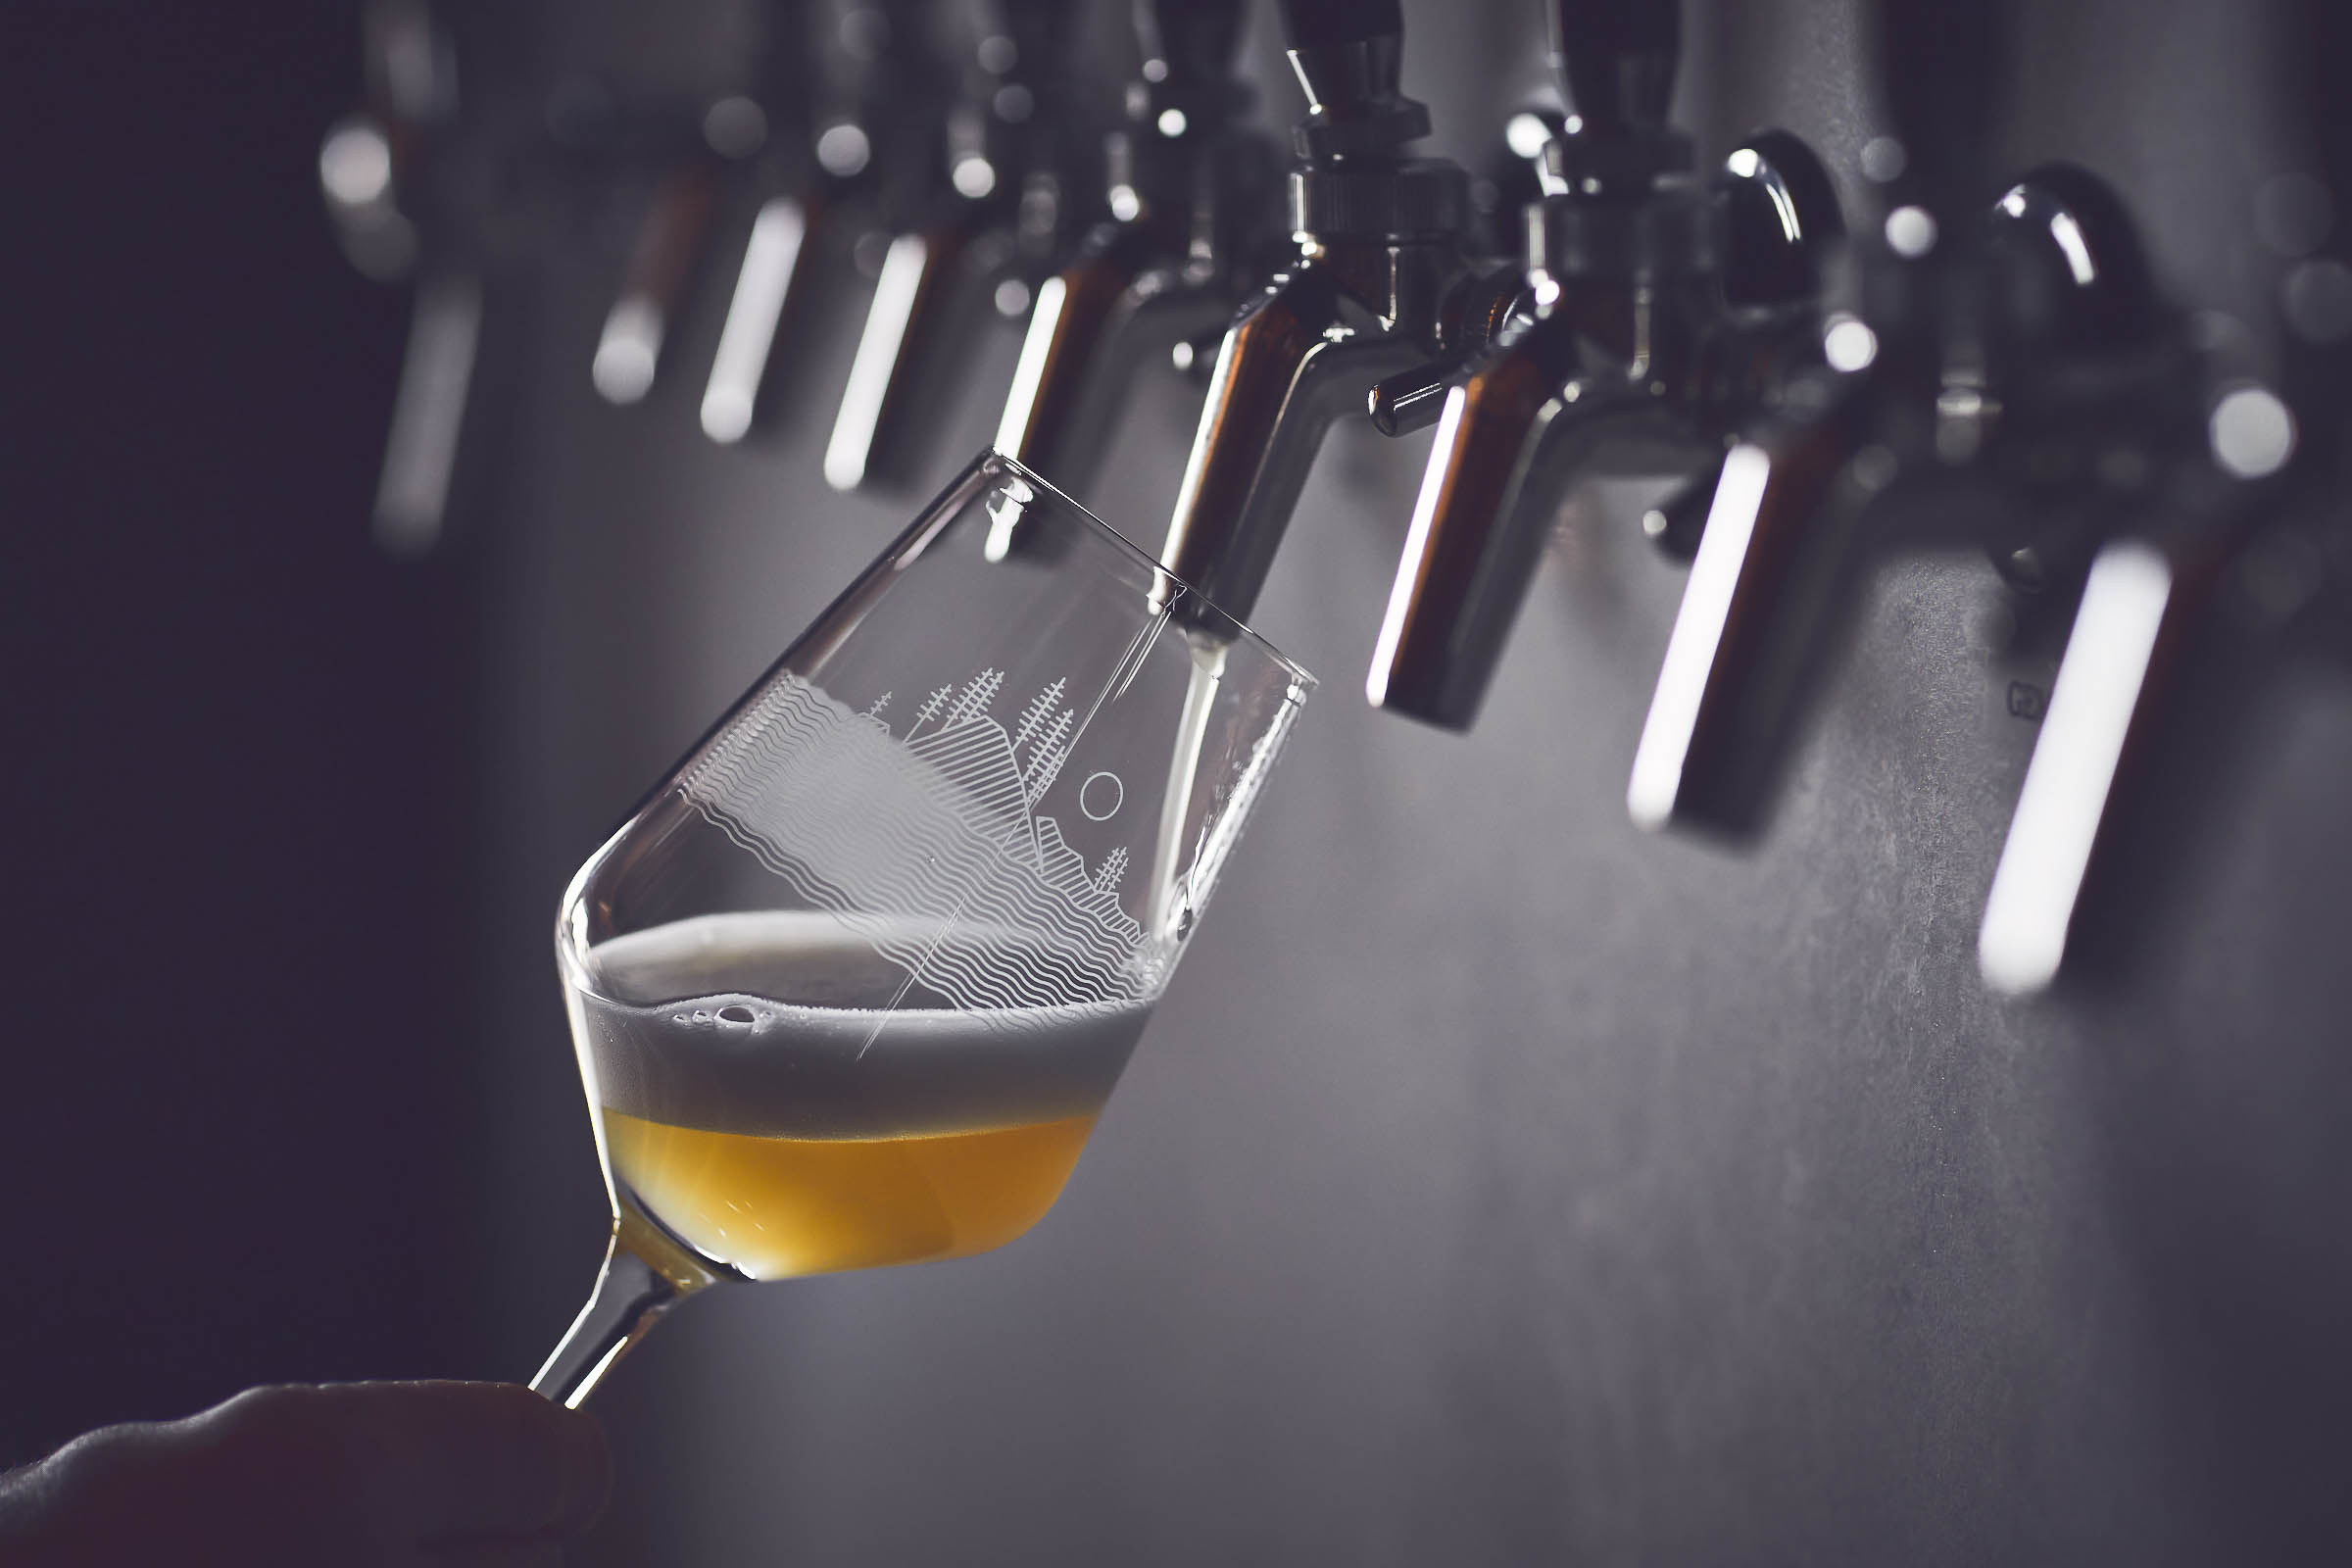 At Last, One of Seattle's Most Anticipated New Breweries Has Arrived